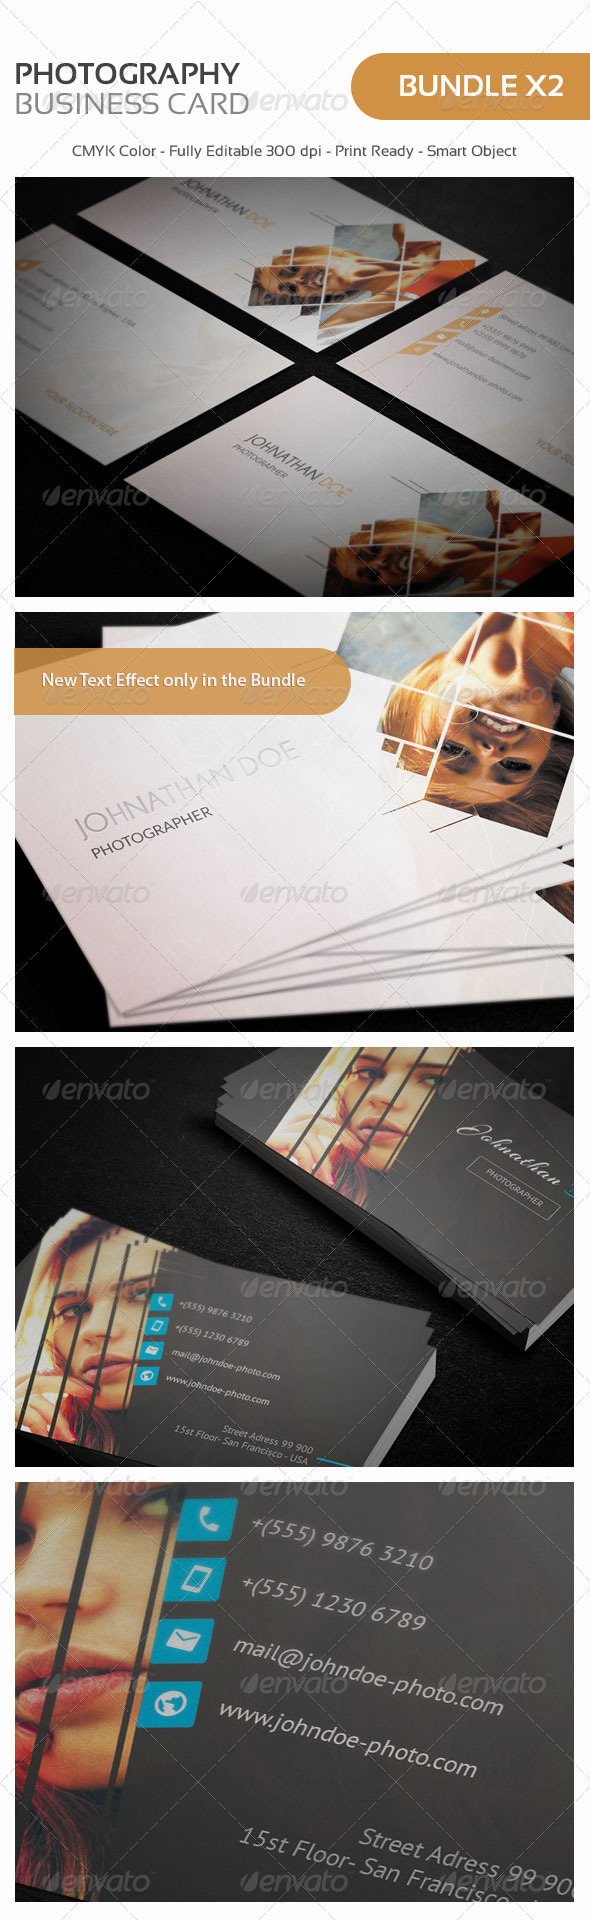 Photography Personal Business Card Bundle